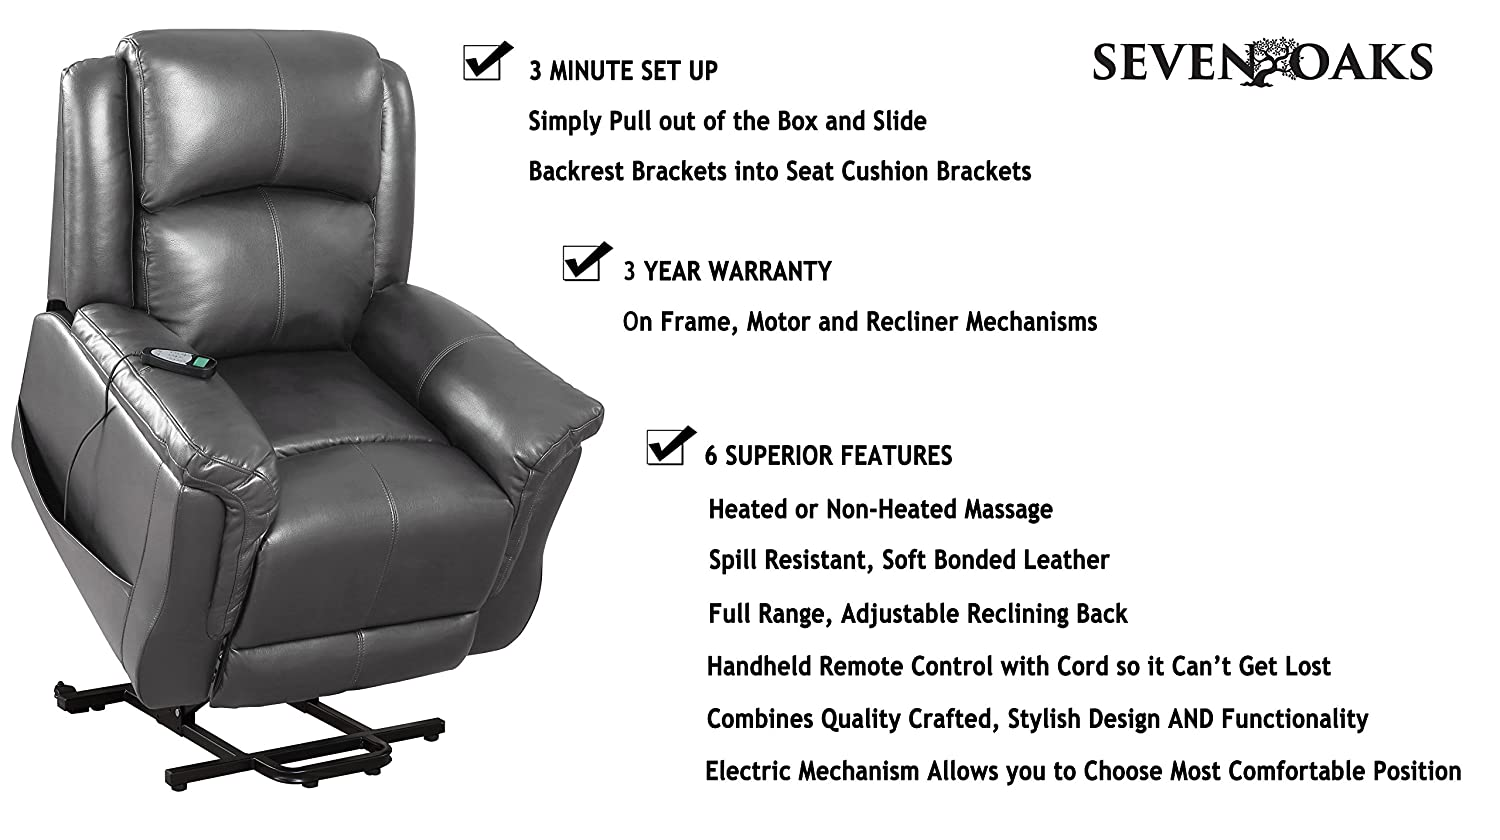 Amazon.com Seven Oaks Power Lift Recliner for Seniors | Electric Chair for the Elderly with Heated Massage | Adjustable Controls u0026 Full Range of Motion ...  sc 1 st  Amazon.com & Amazon.com: Seven Oaks Power Lift Recliner for Seniors | Electric ... islam-shia.org